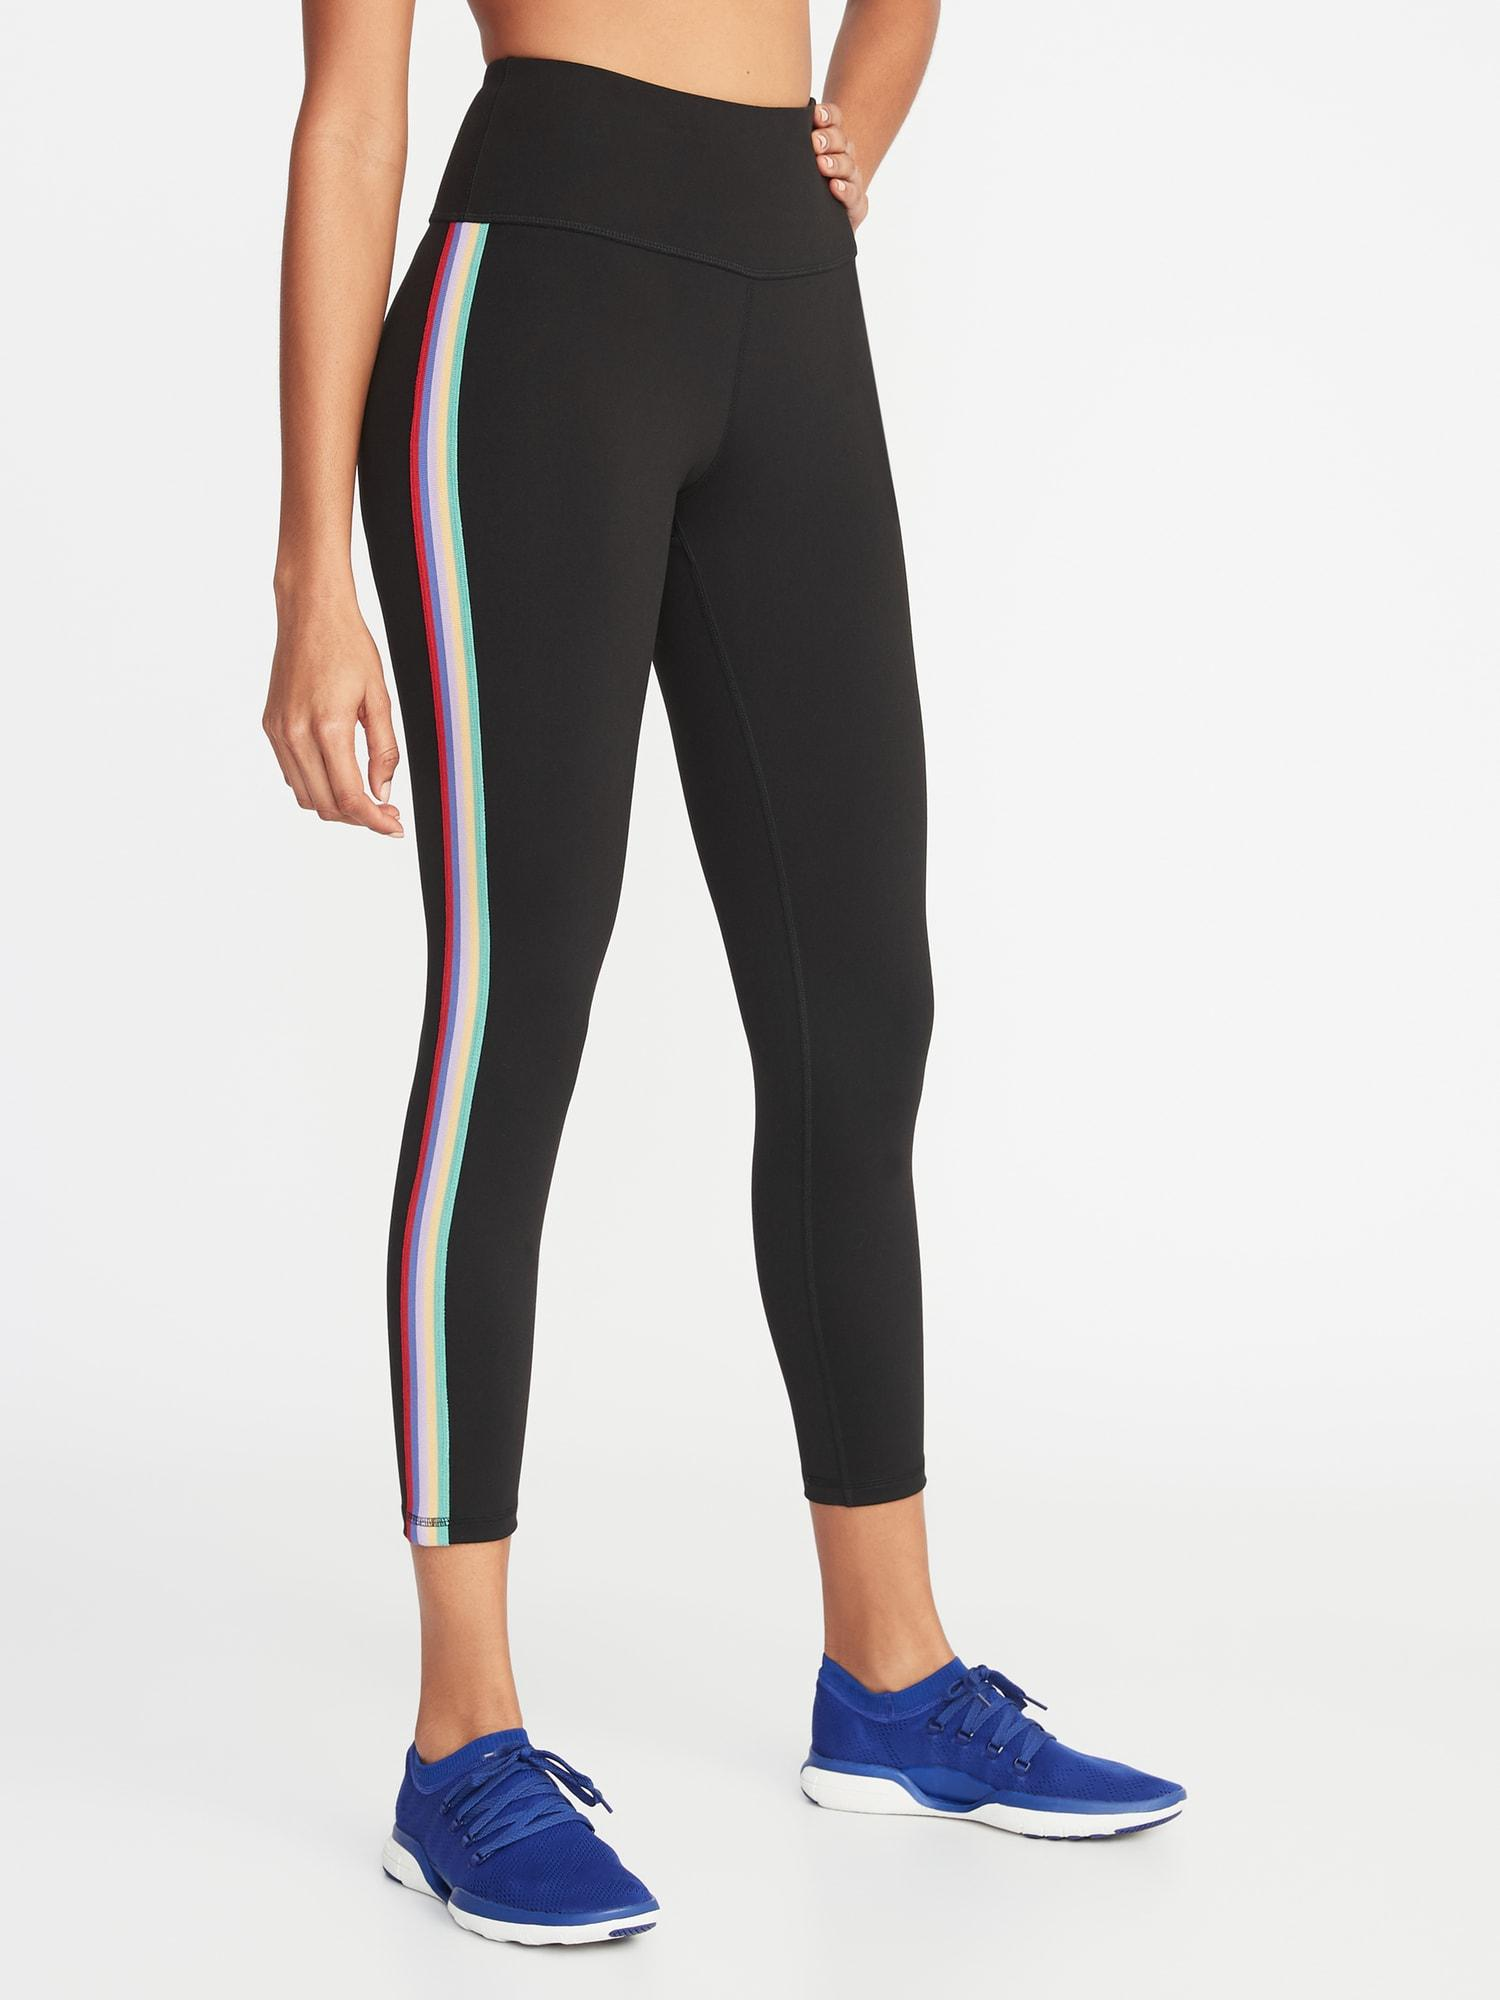 7ff44a73bf4fa Old Navy High-rise Elevate Side-stripe 7/8-length Compression ...